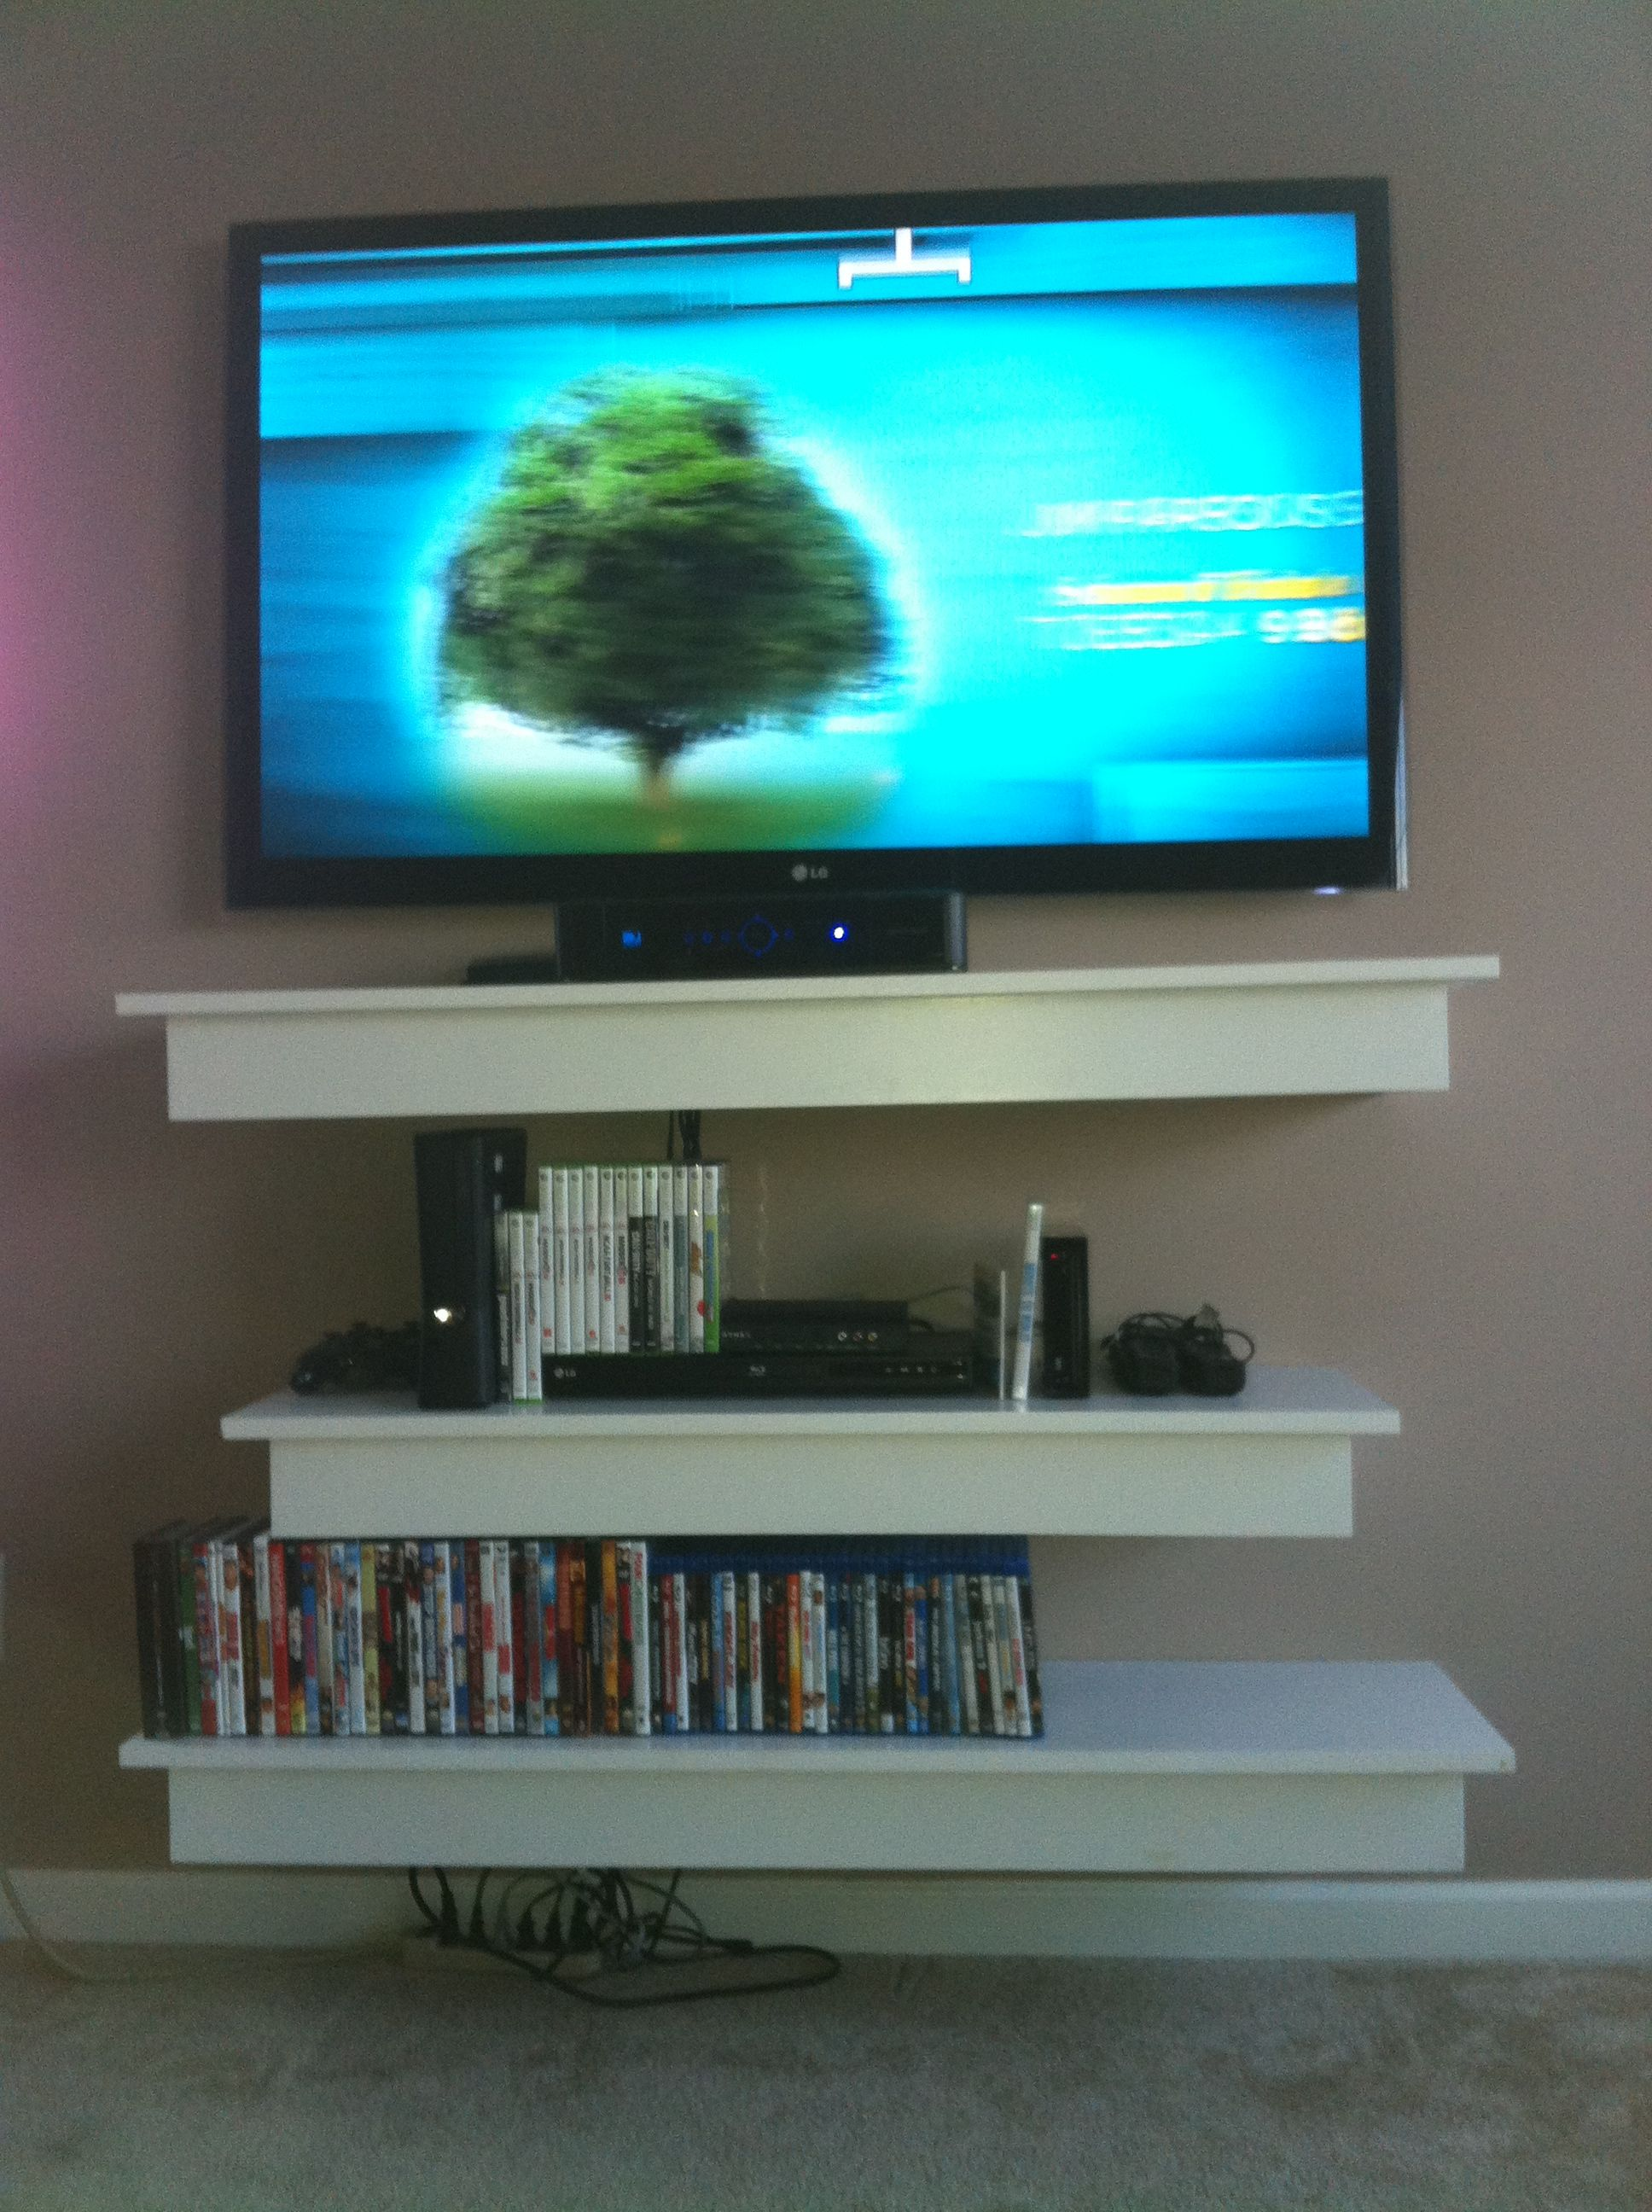 Pin By Brandy Denham On Home Decor Floating Shelf Under Tv Floating Shelves Bedroom Shelves Under Tv